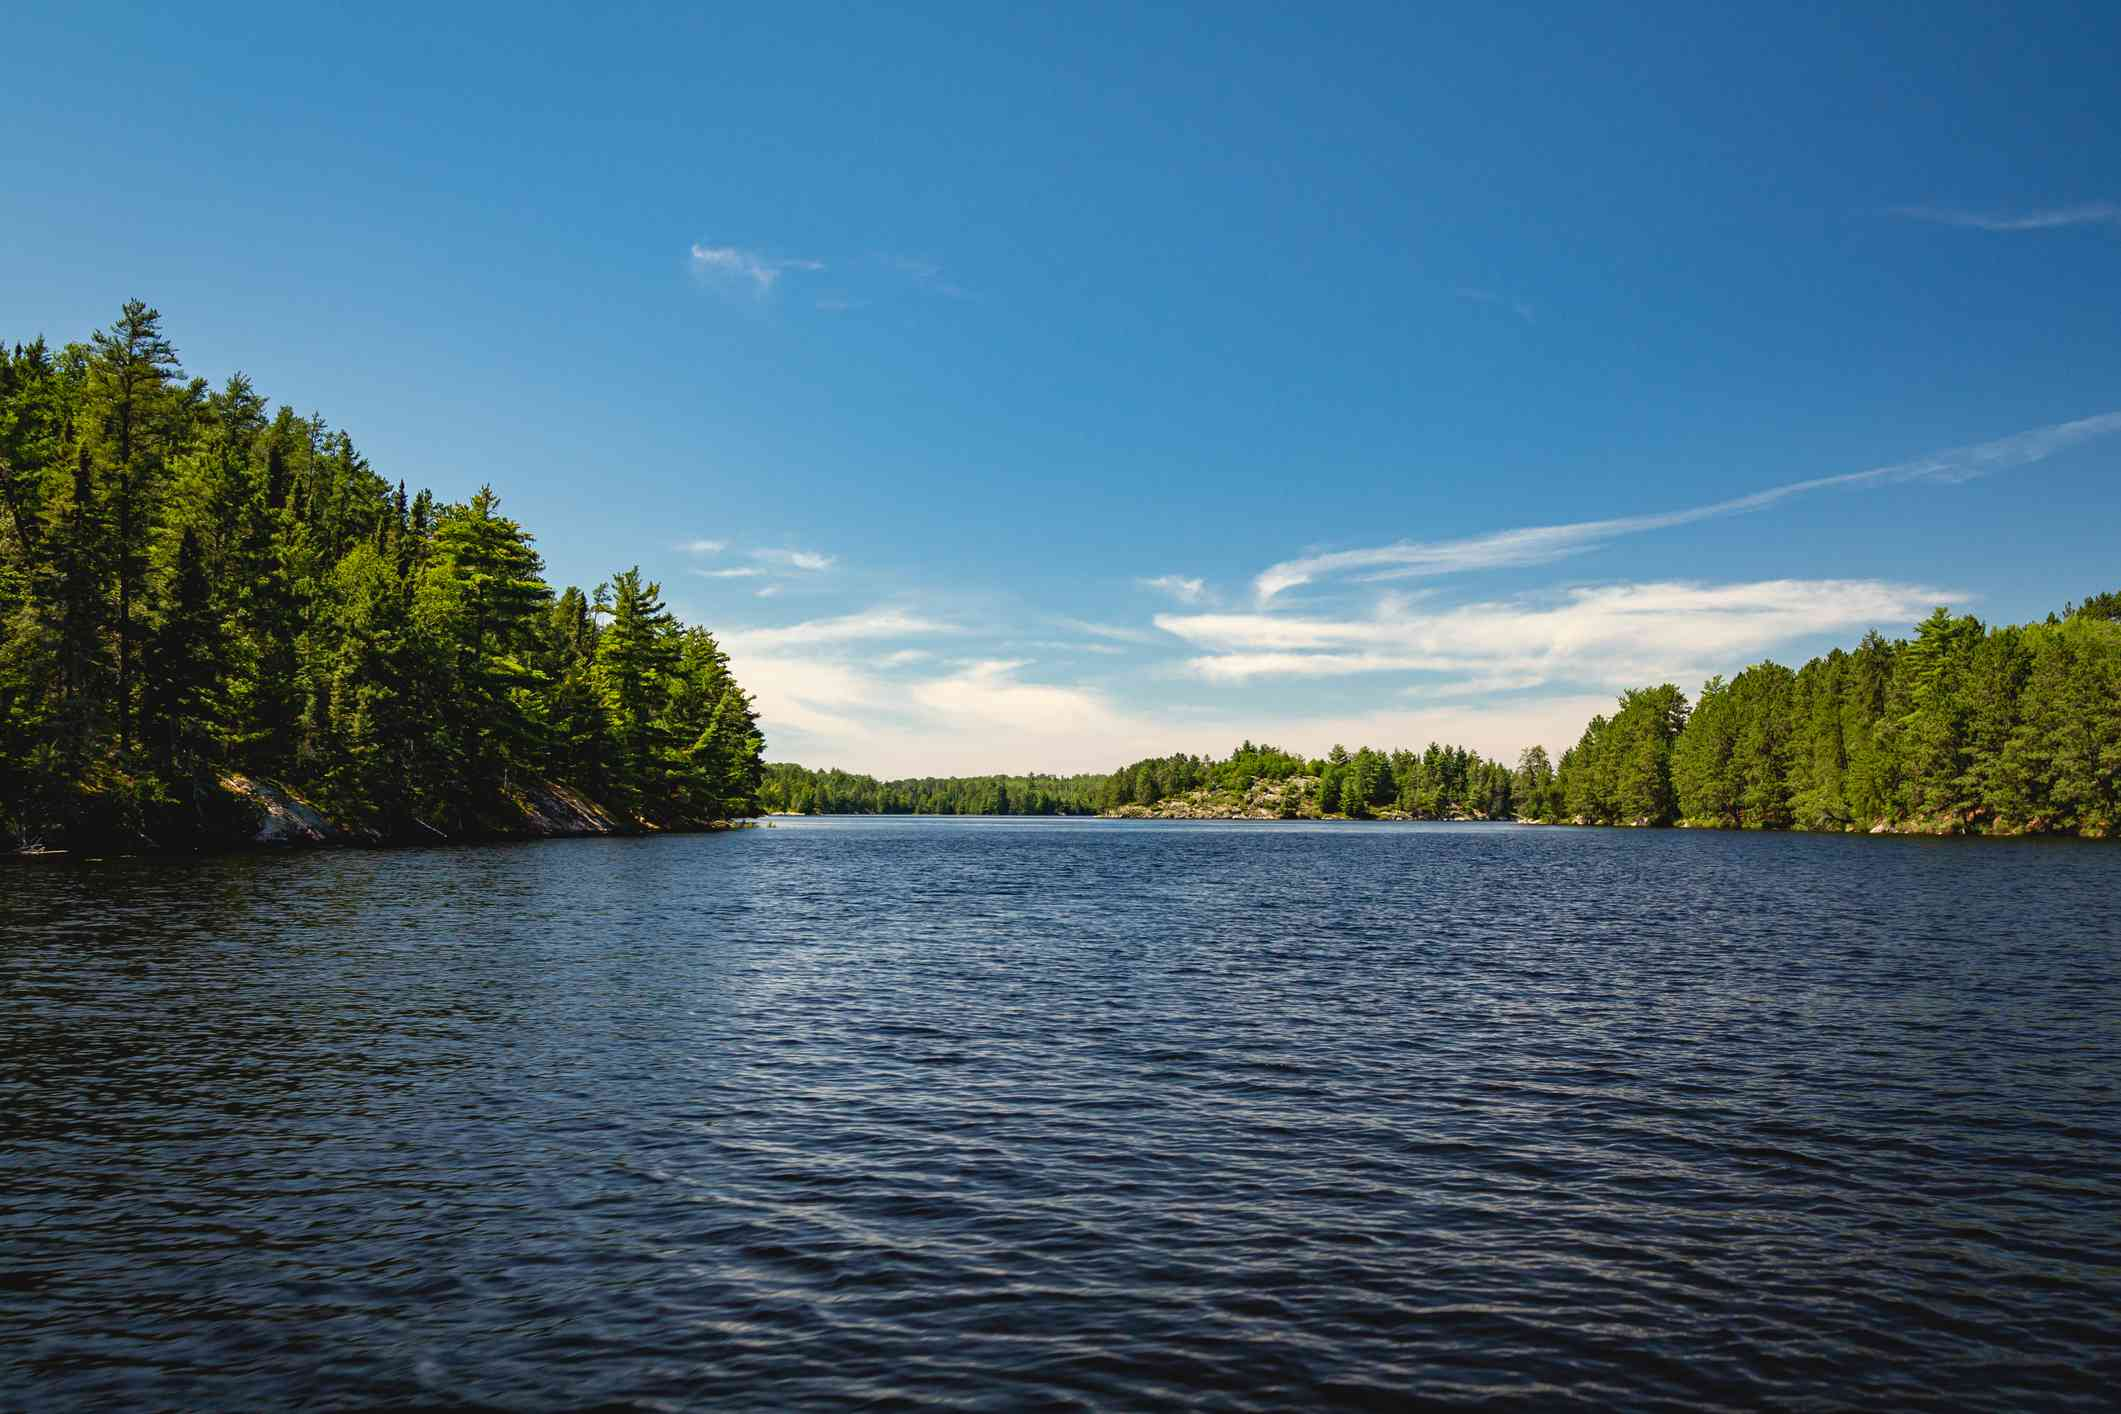 shores of Lake Kabetogama with lush green trees on both sides and blue skies above in Voyageurs National Park, Minnesota